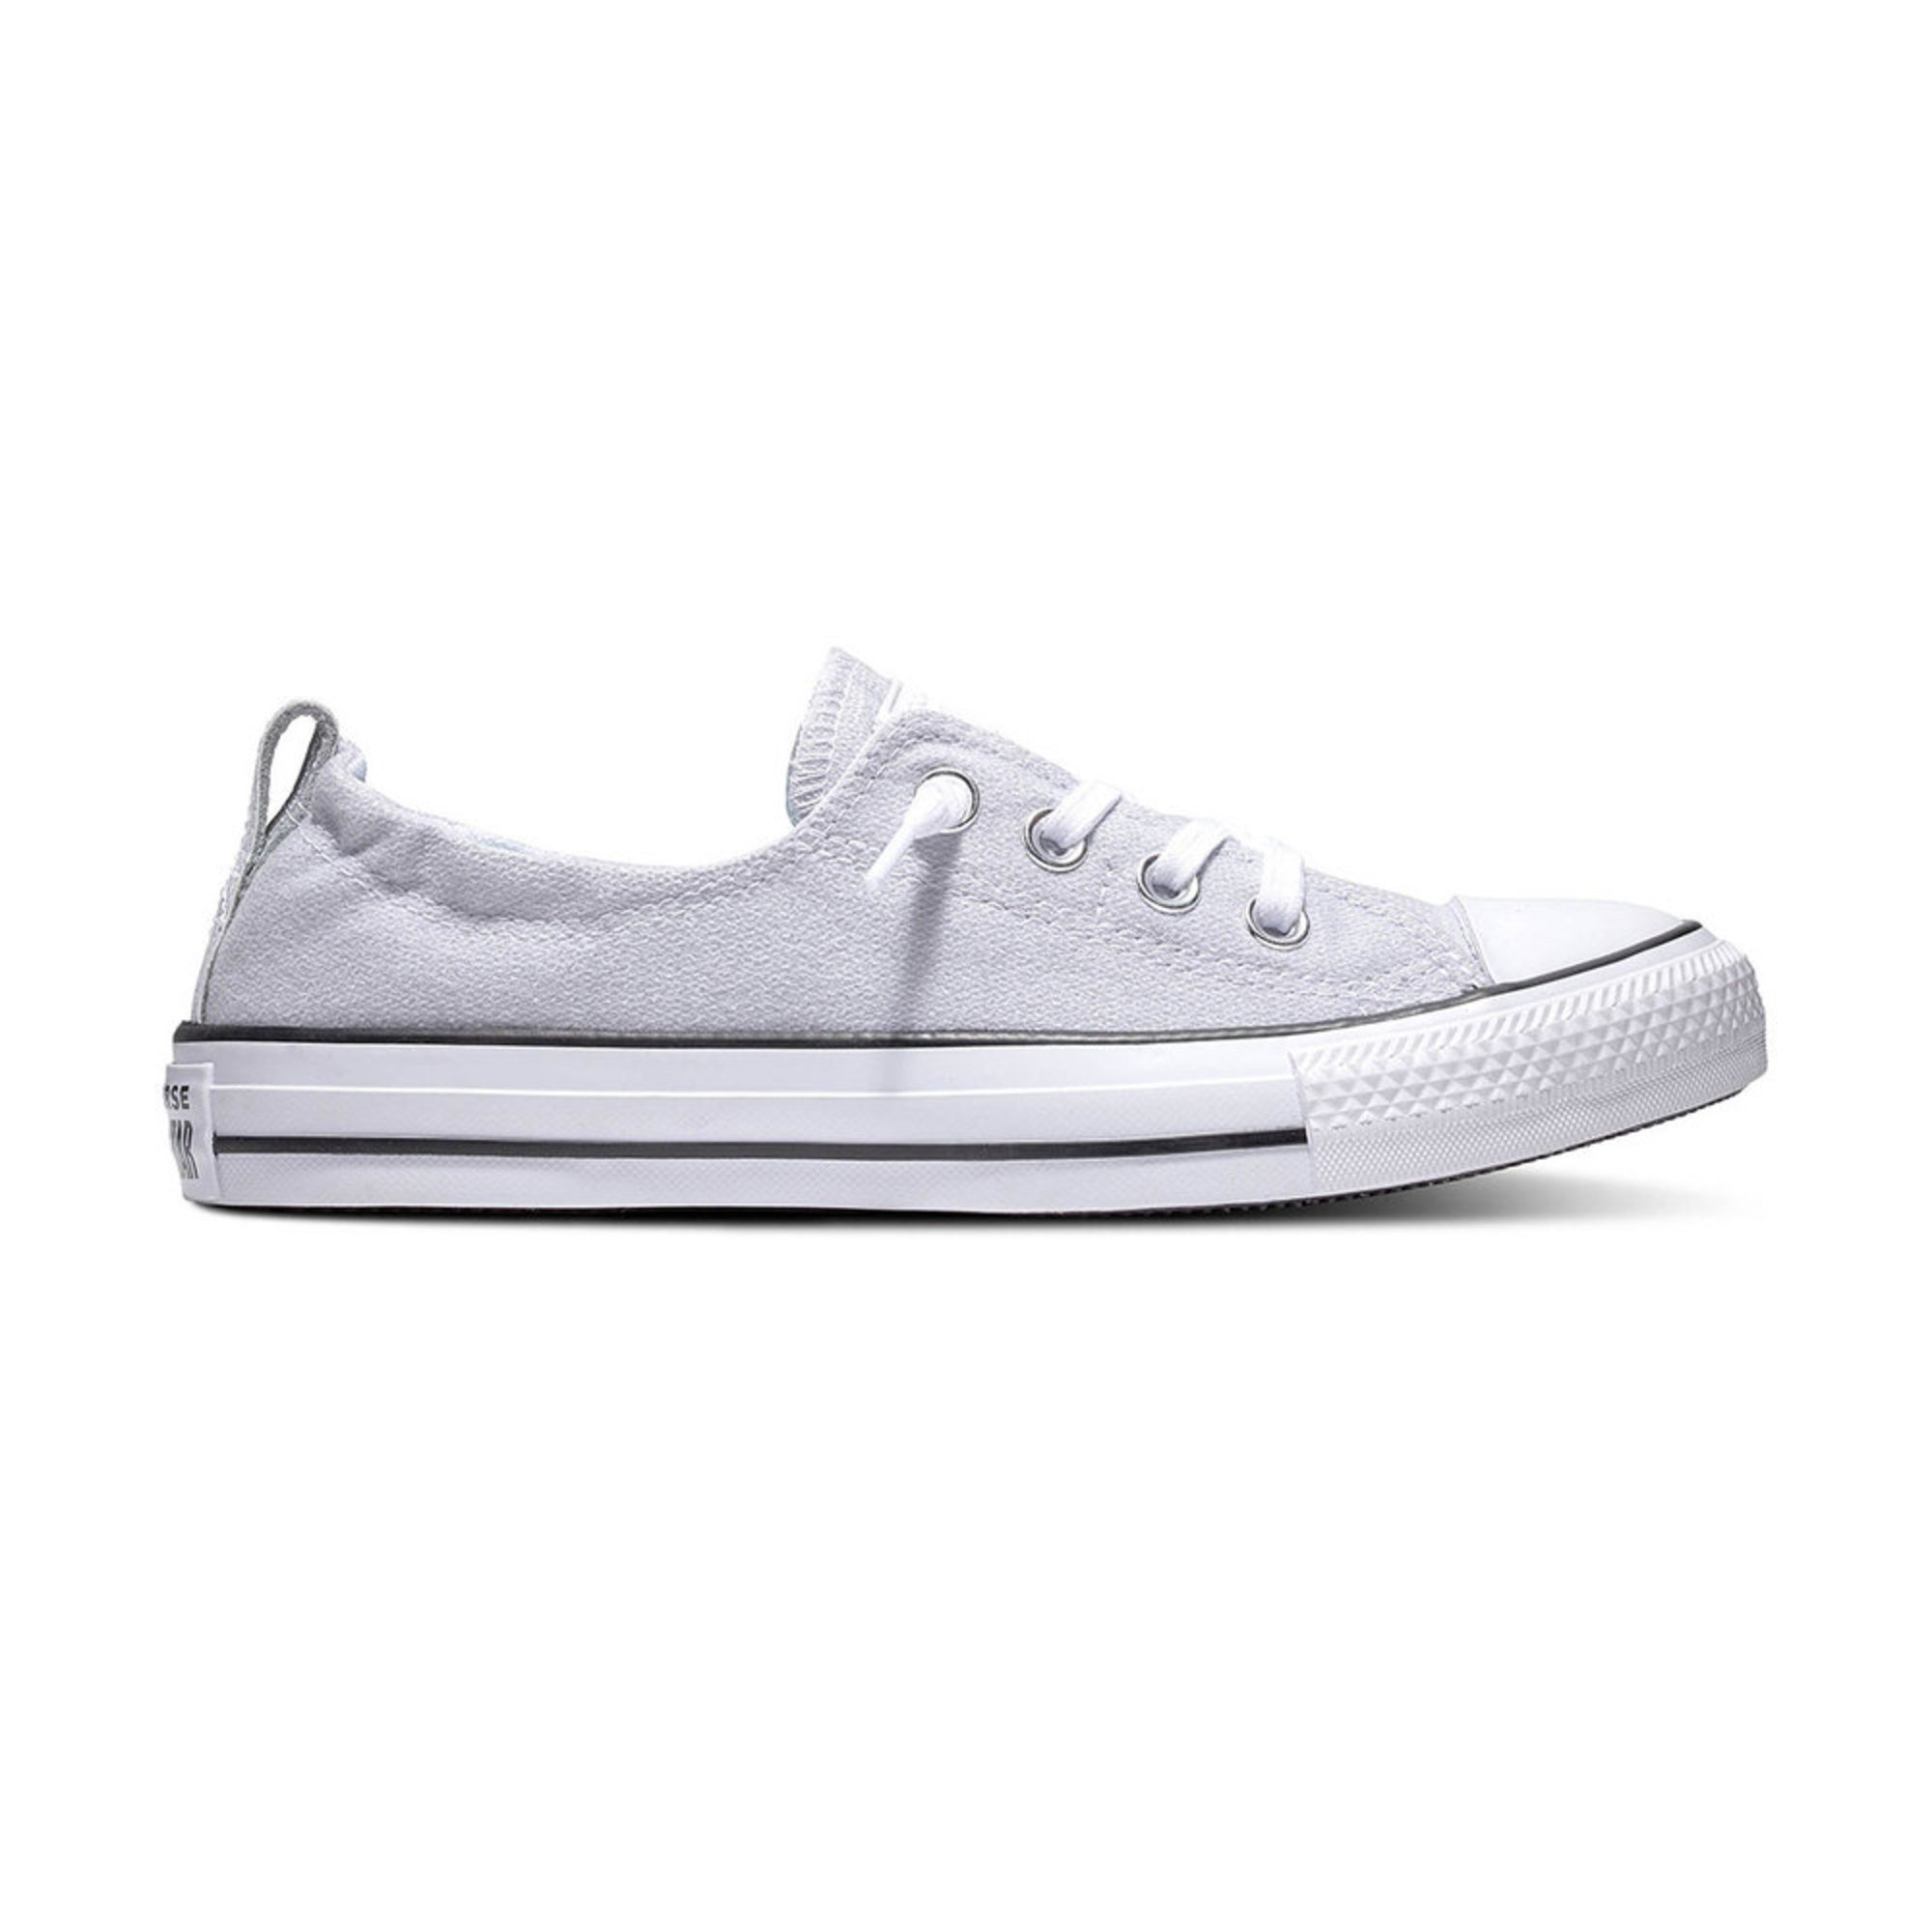 d3e5d561ecd Converse. Converse Women s Chuck Taylor All Star Shoreline Slip On